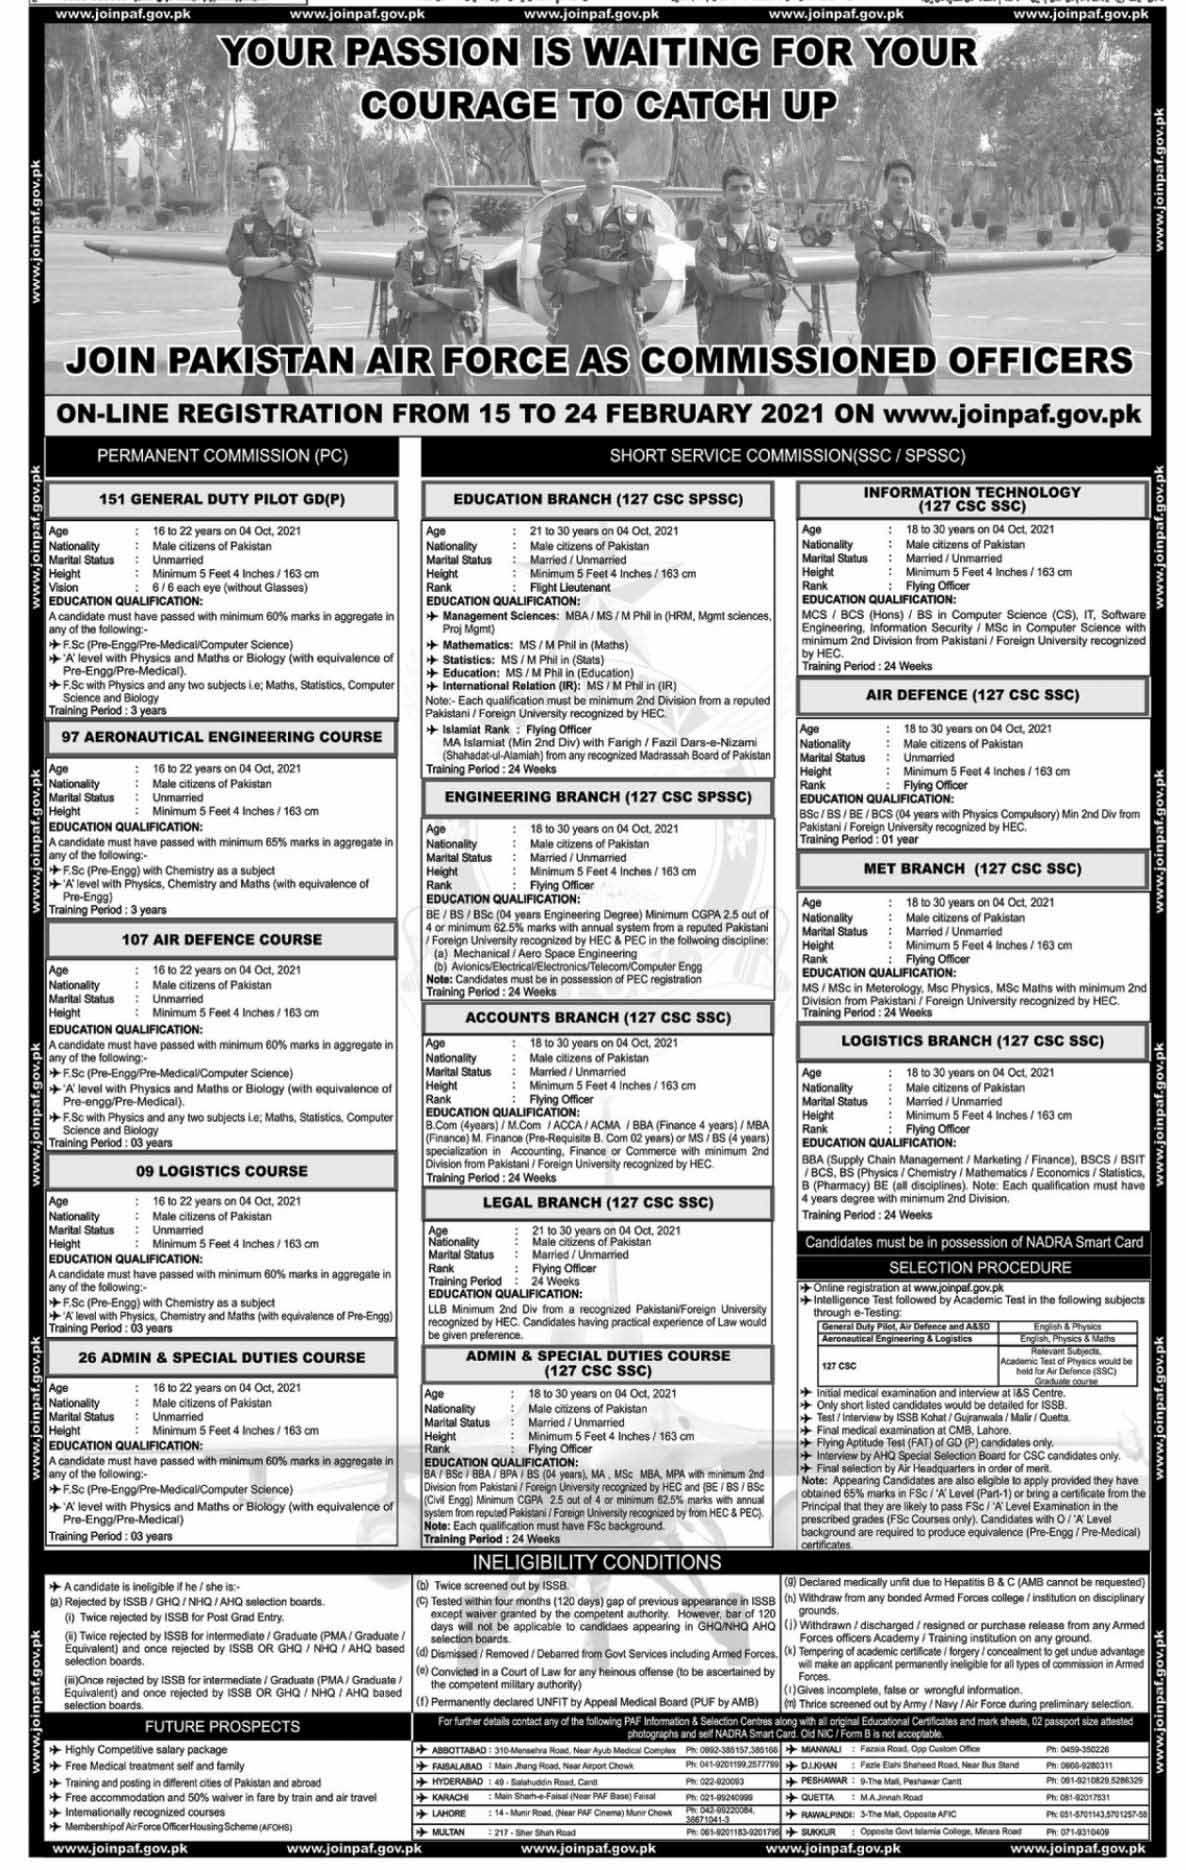 Commissioned Officern PAF jobs